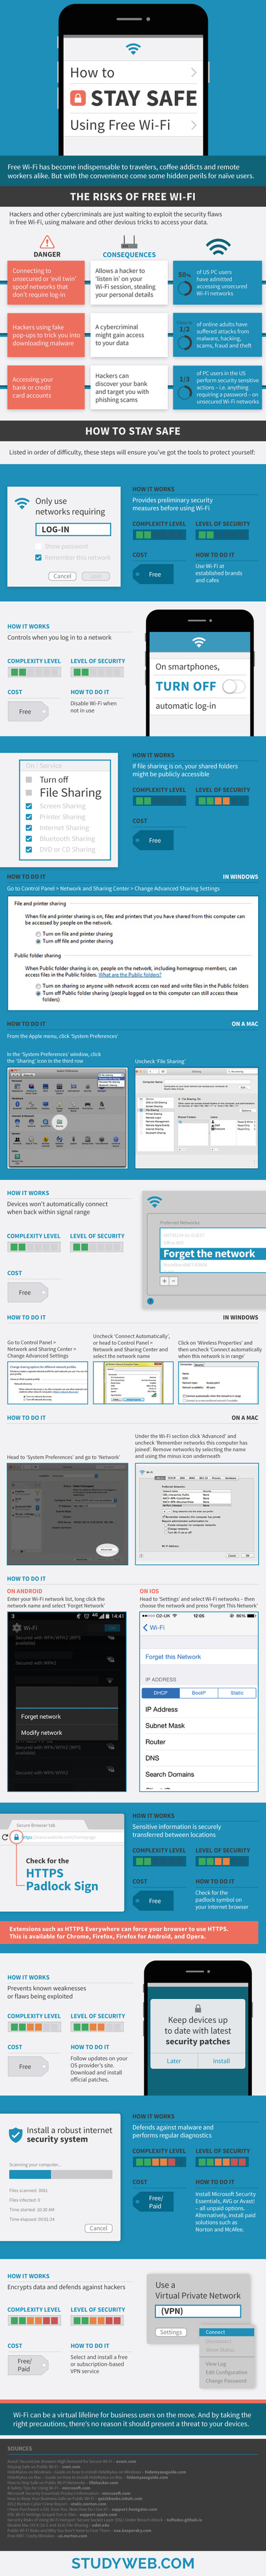 How to Stay Safe Using Free Wi-Fi | Information Technology & Social Media News | Scoop.it